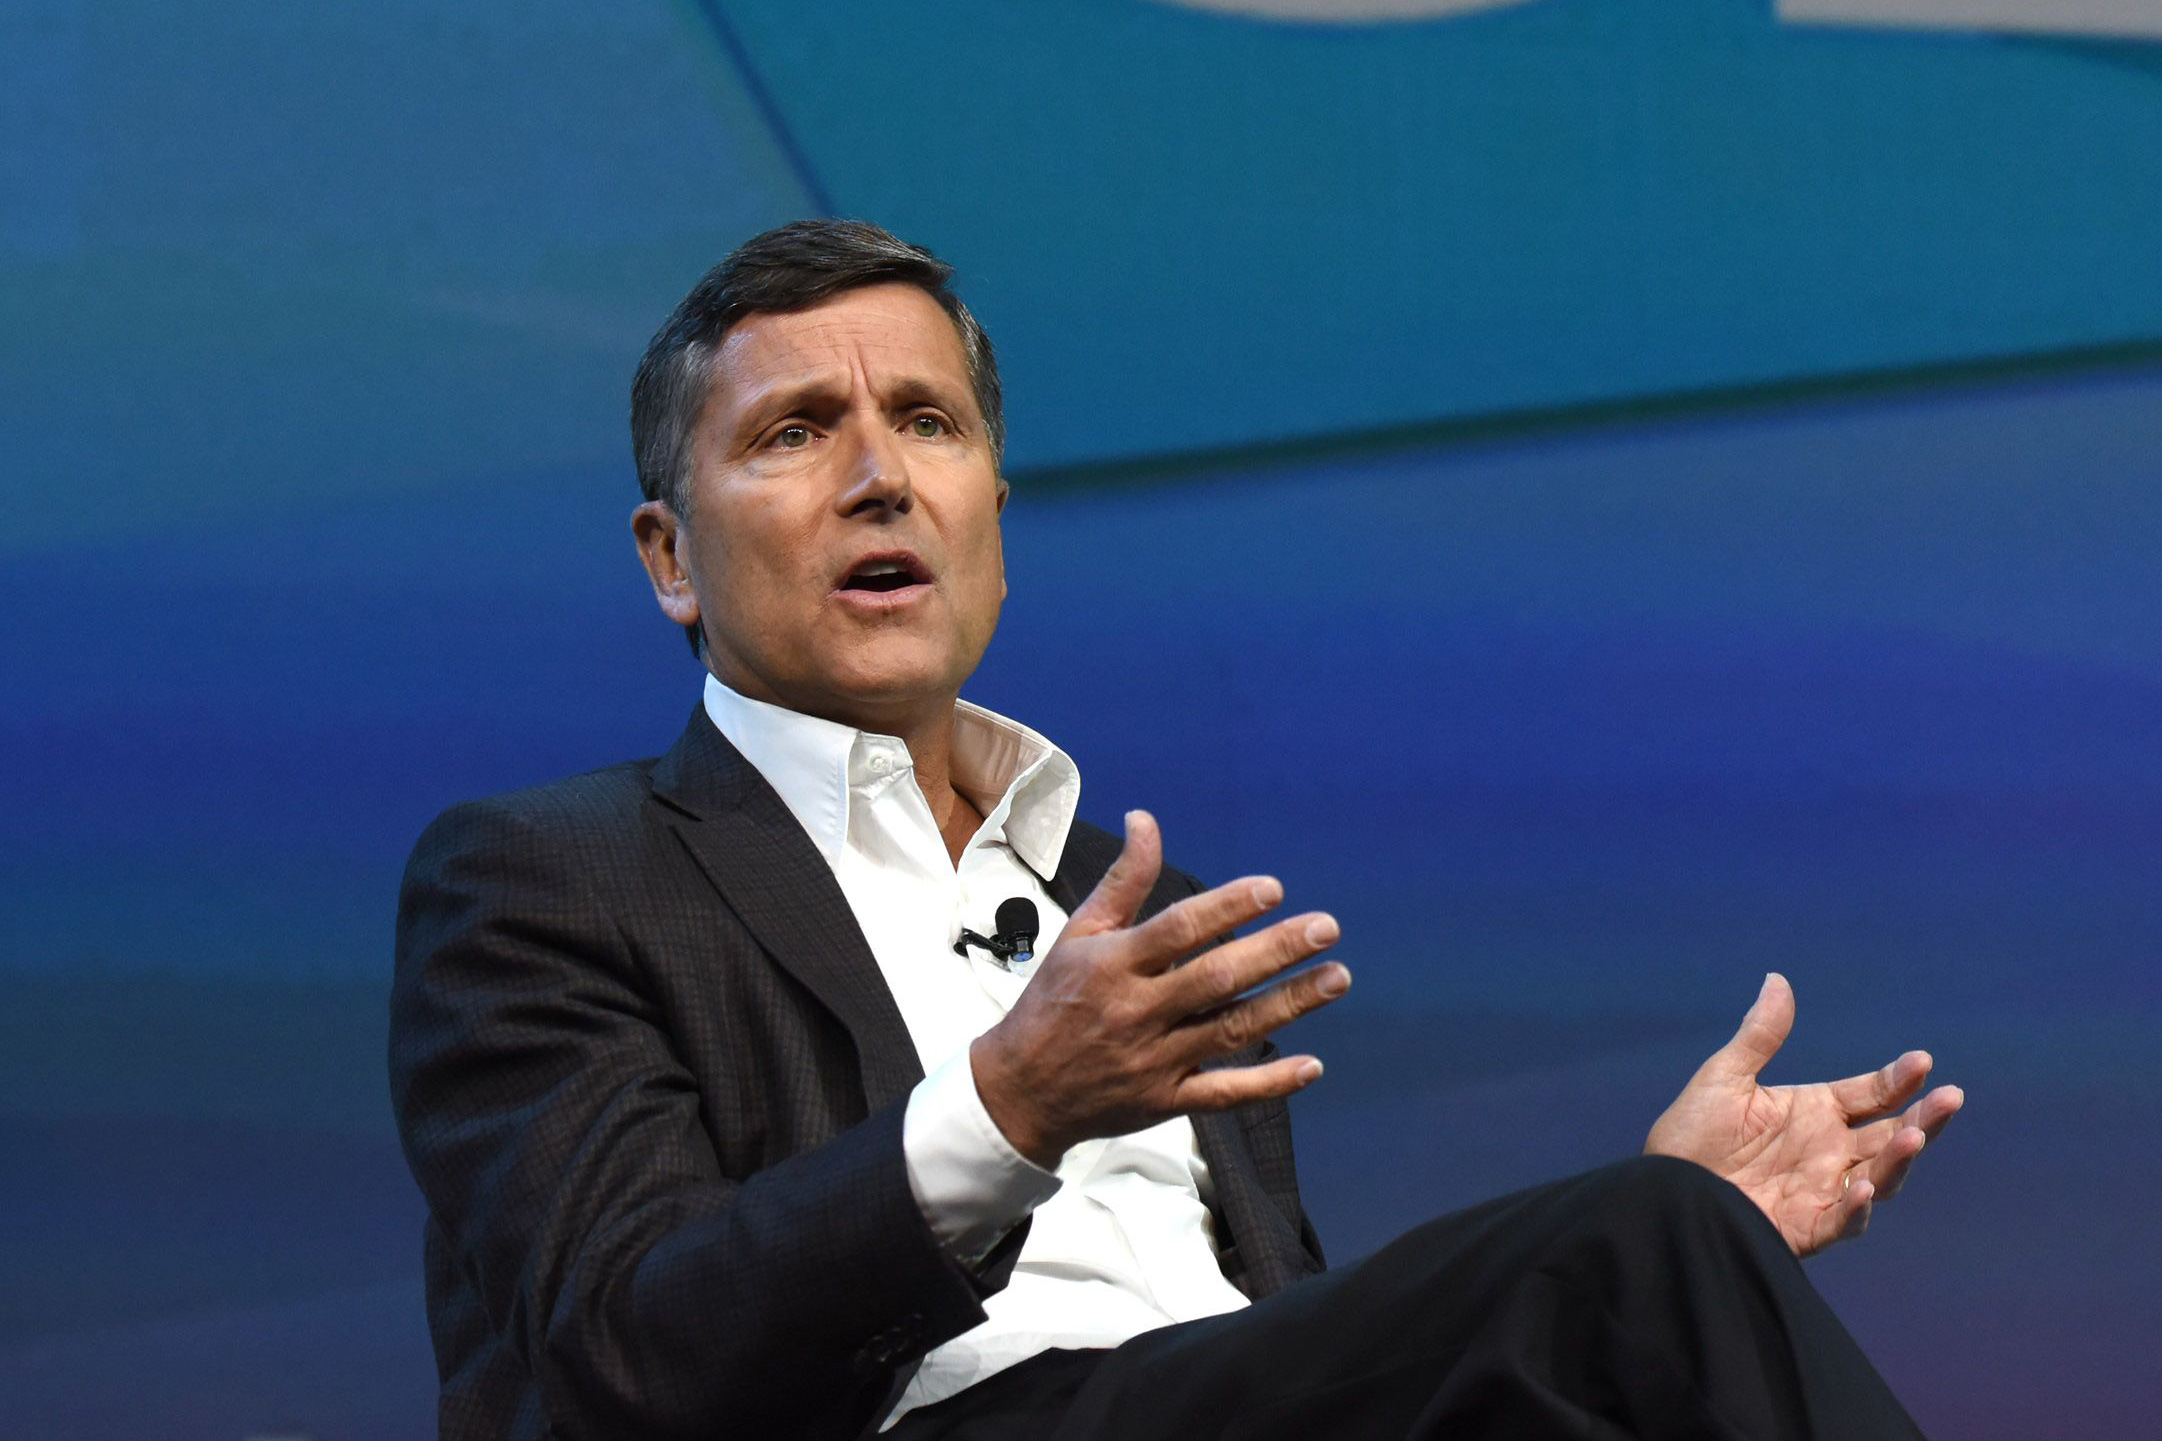 NBC Universal CEO Steve Burke set to leave his post in August